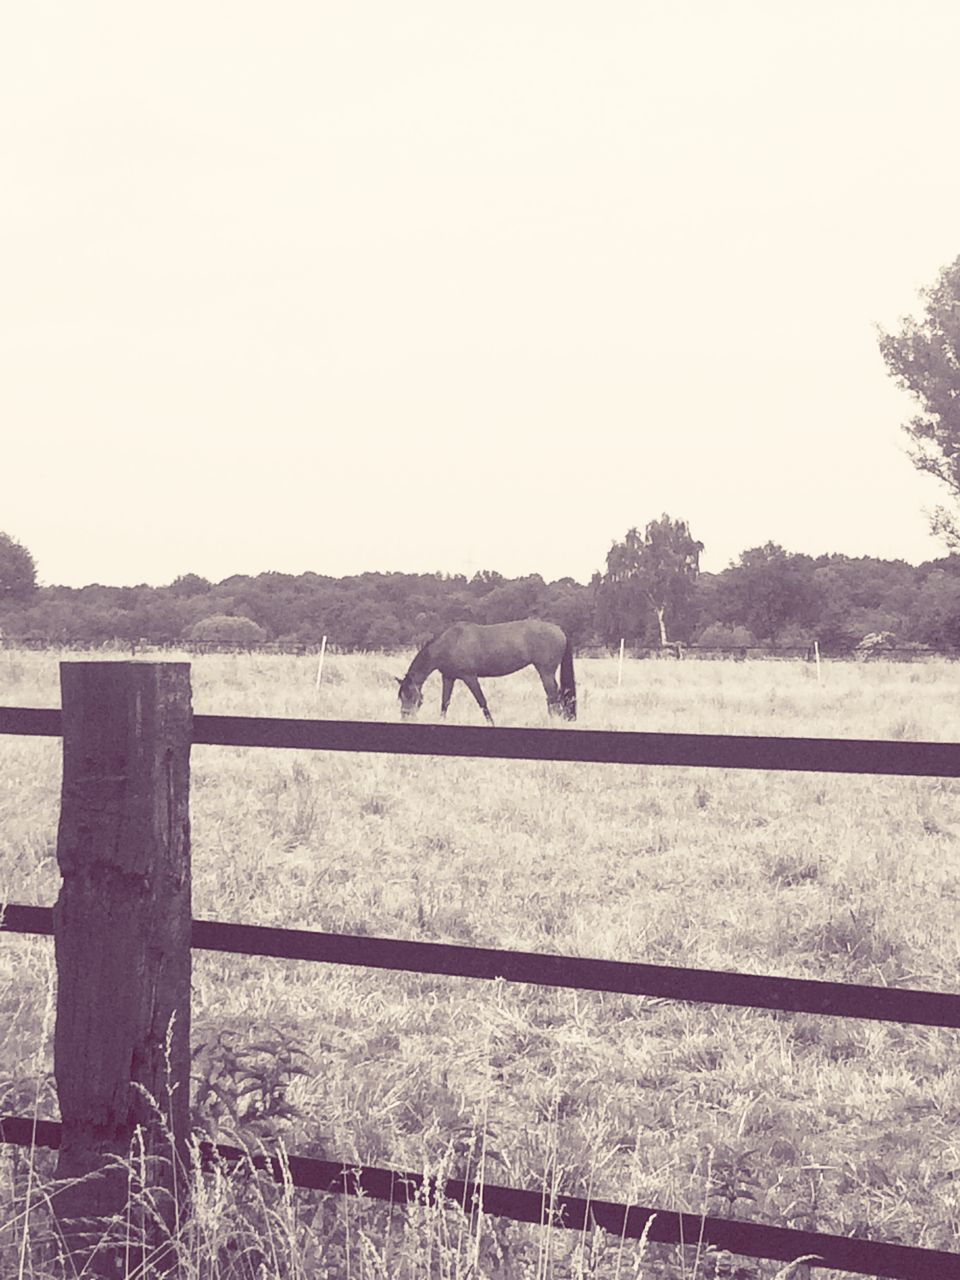 horse, animal themes, mammal, no people, nature, outdoors, landscape, domestic animals, field, one animal, day, livestock, paddock, grazing, clear sky, sky, beauty in nature, tree